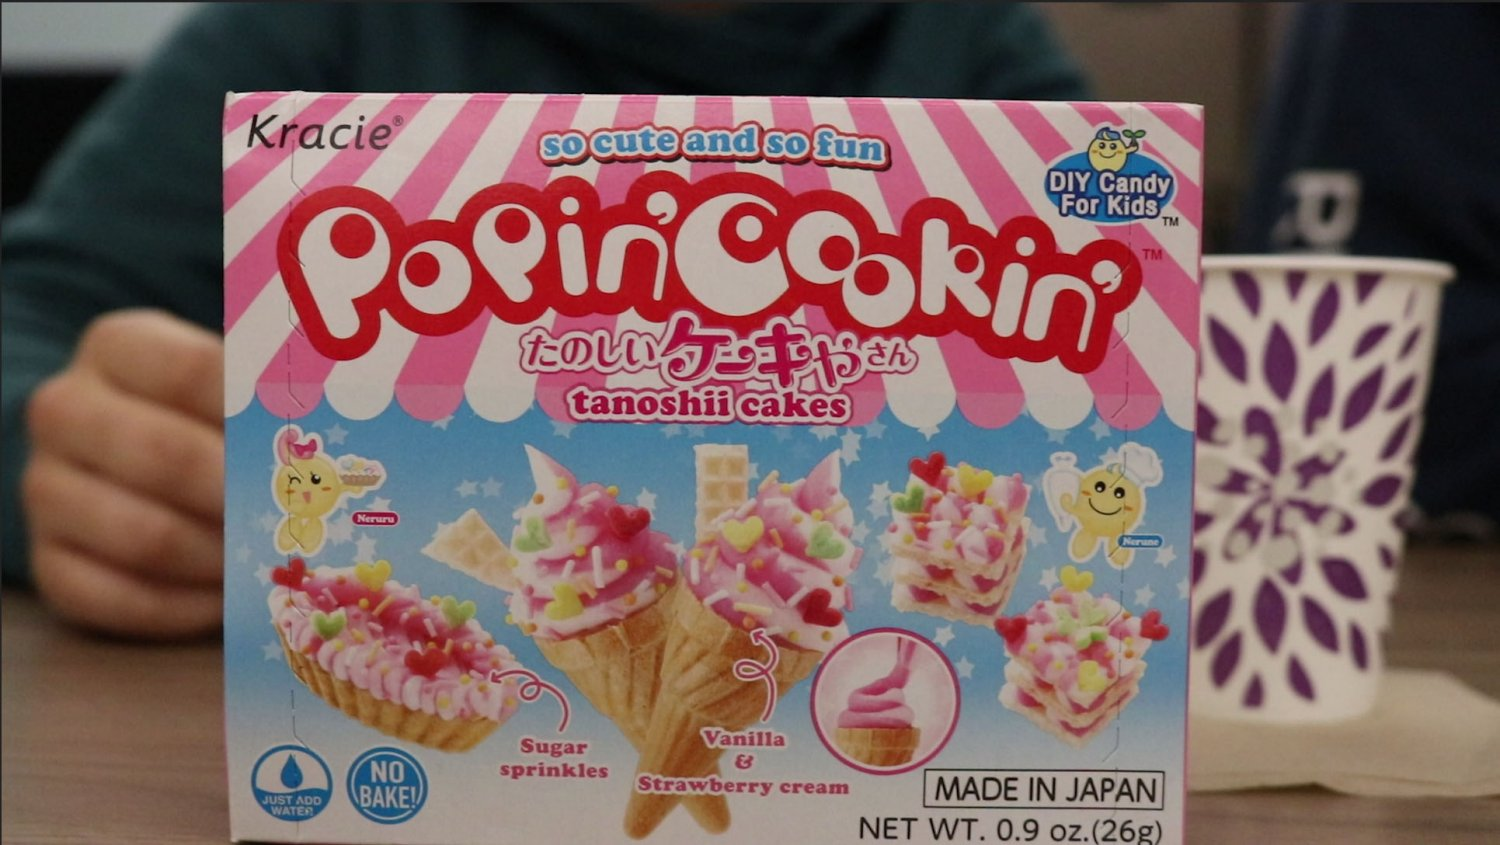 Popin' Cookin' Ice Cream